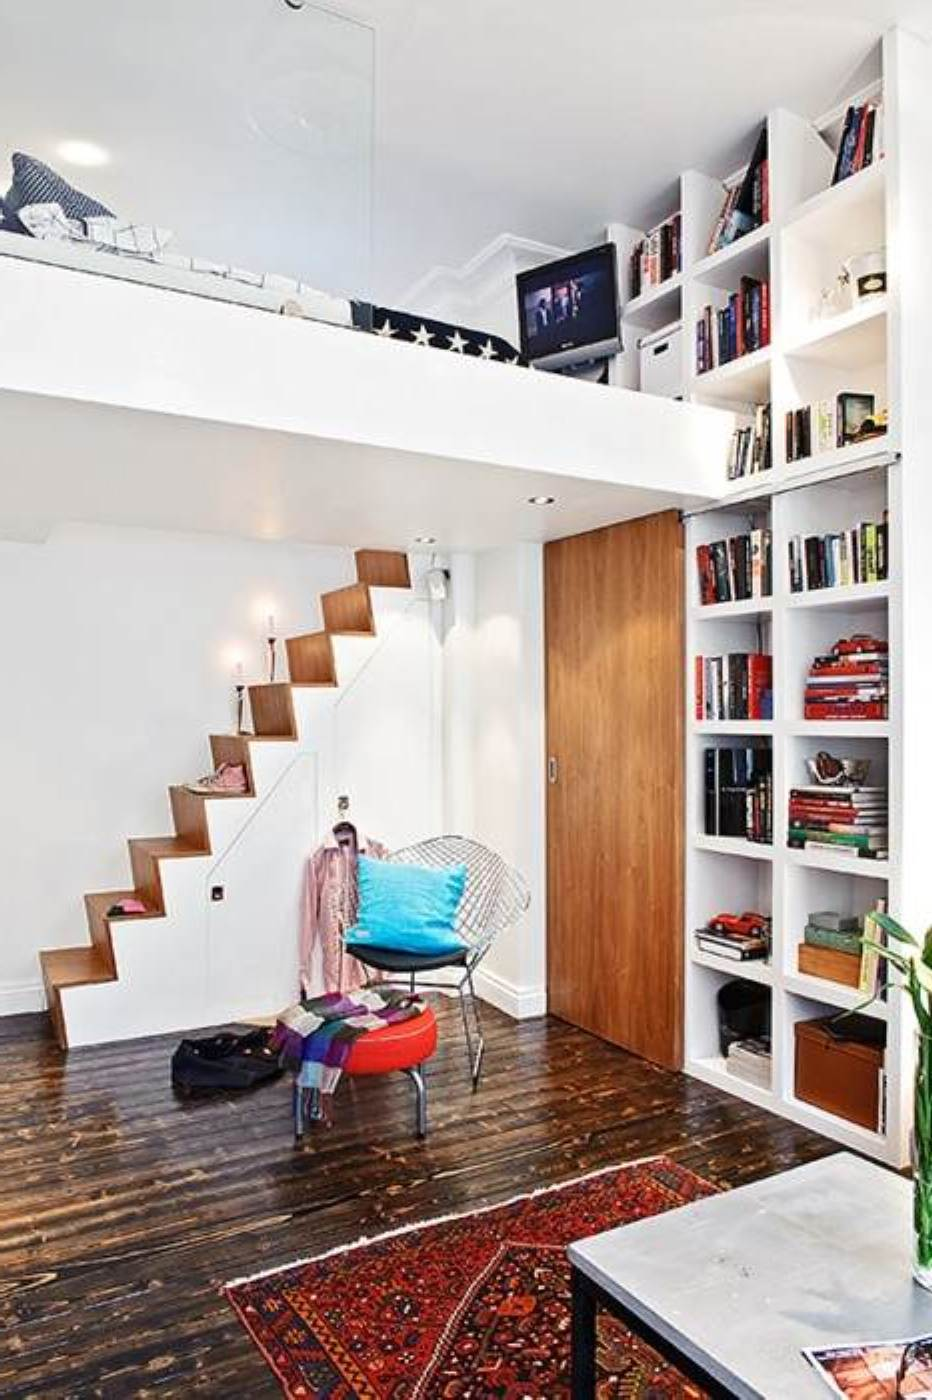 Exellent Furniture Accent with Simple Stair close Large White Wall